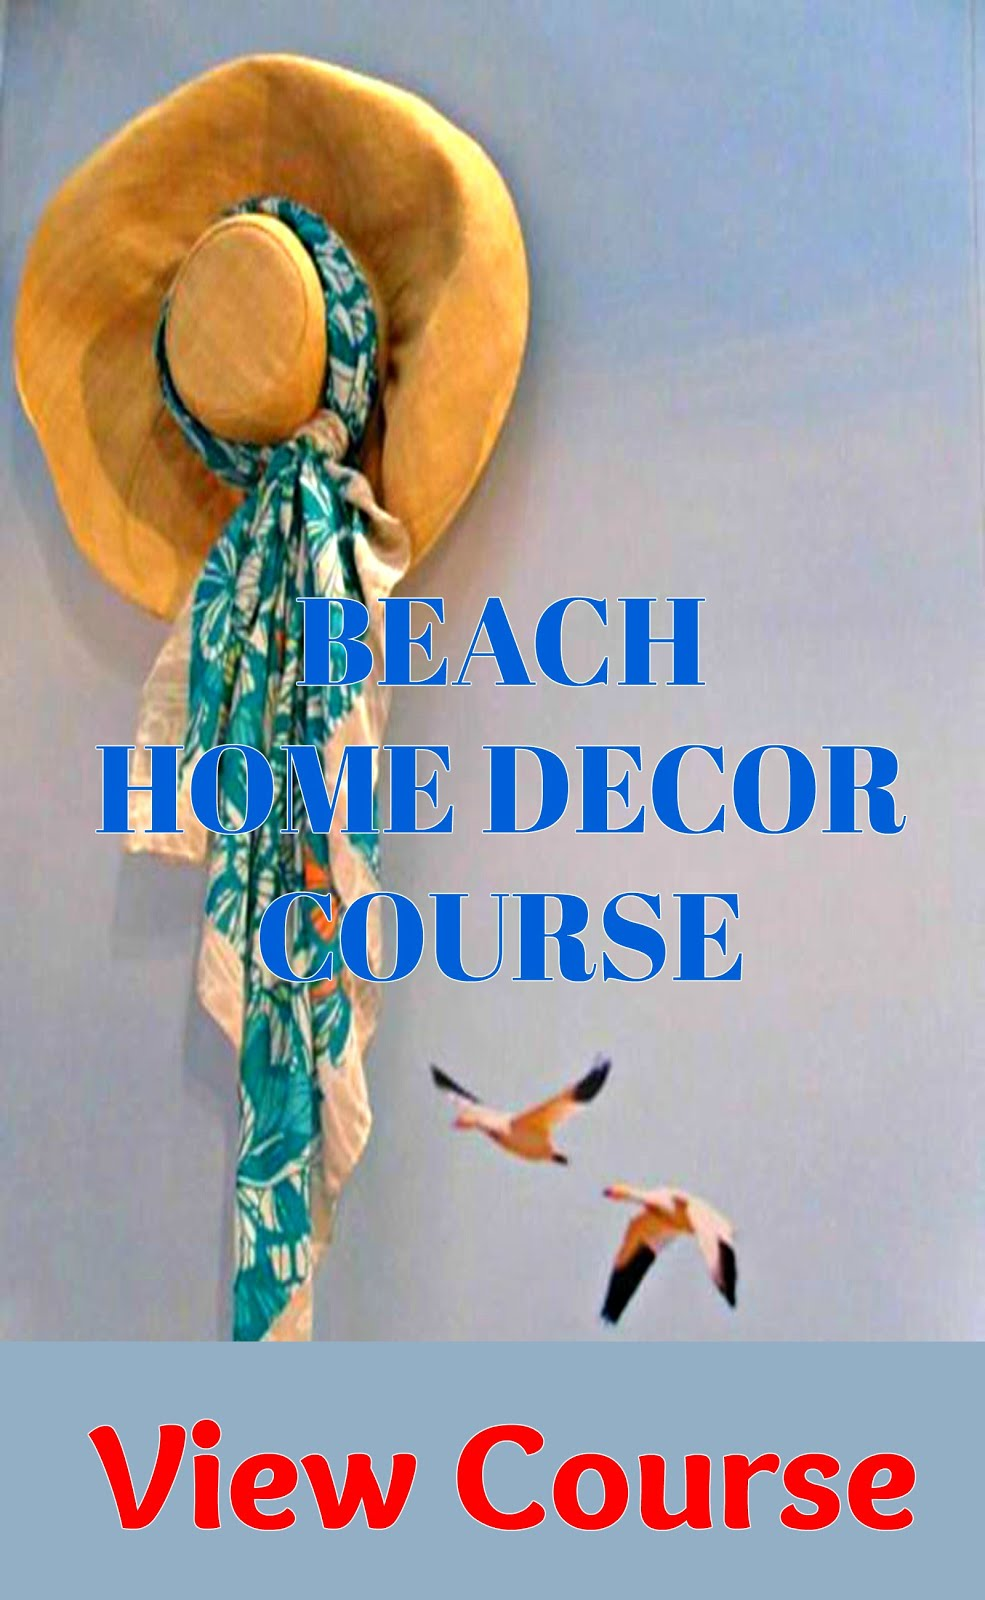 Beach Home Decor Course